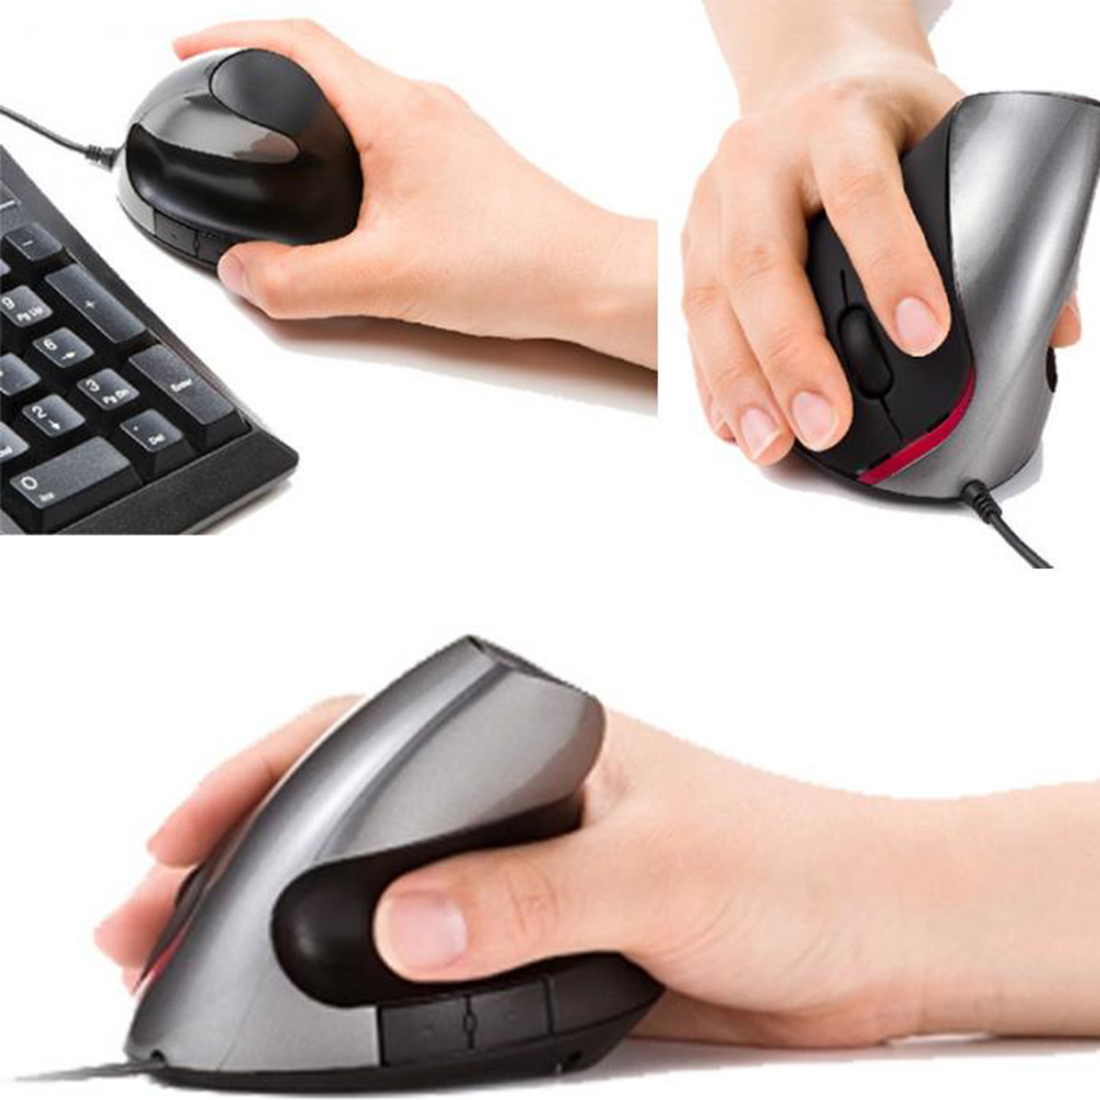 Etmakit New Ergonomic Design USB Vertical Optical Mouse Wrist Healing For Computer PC Laptop Desktop